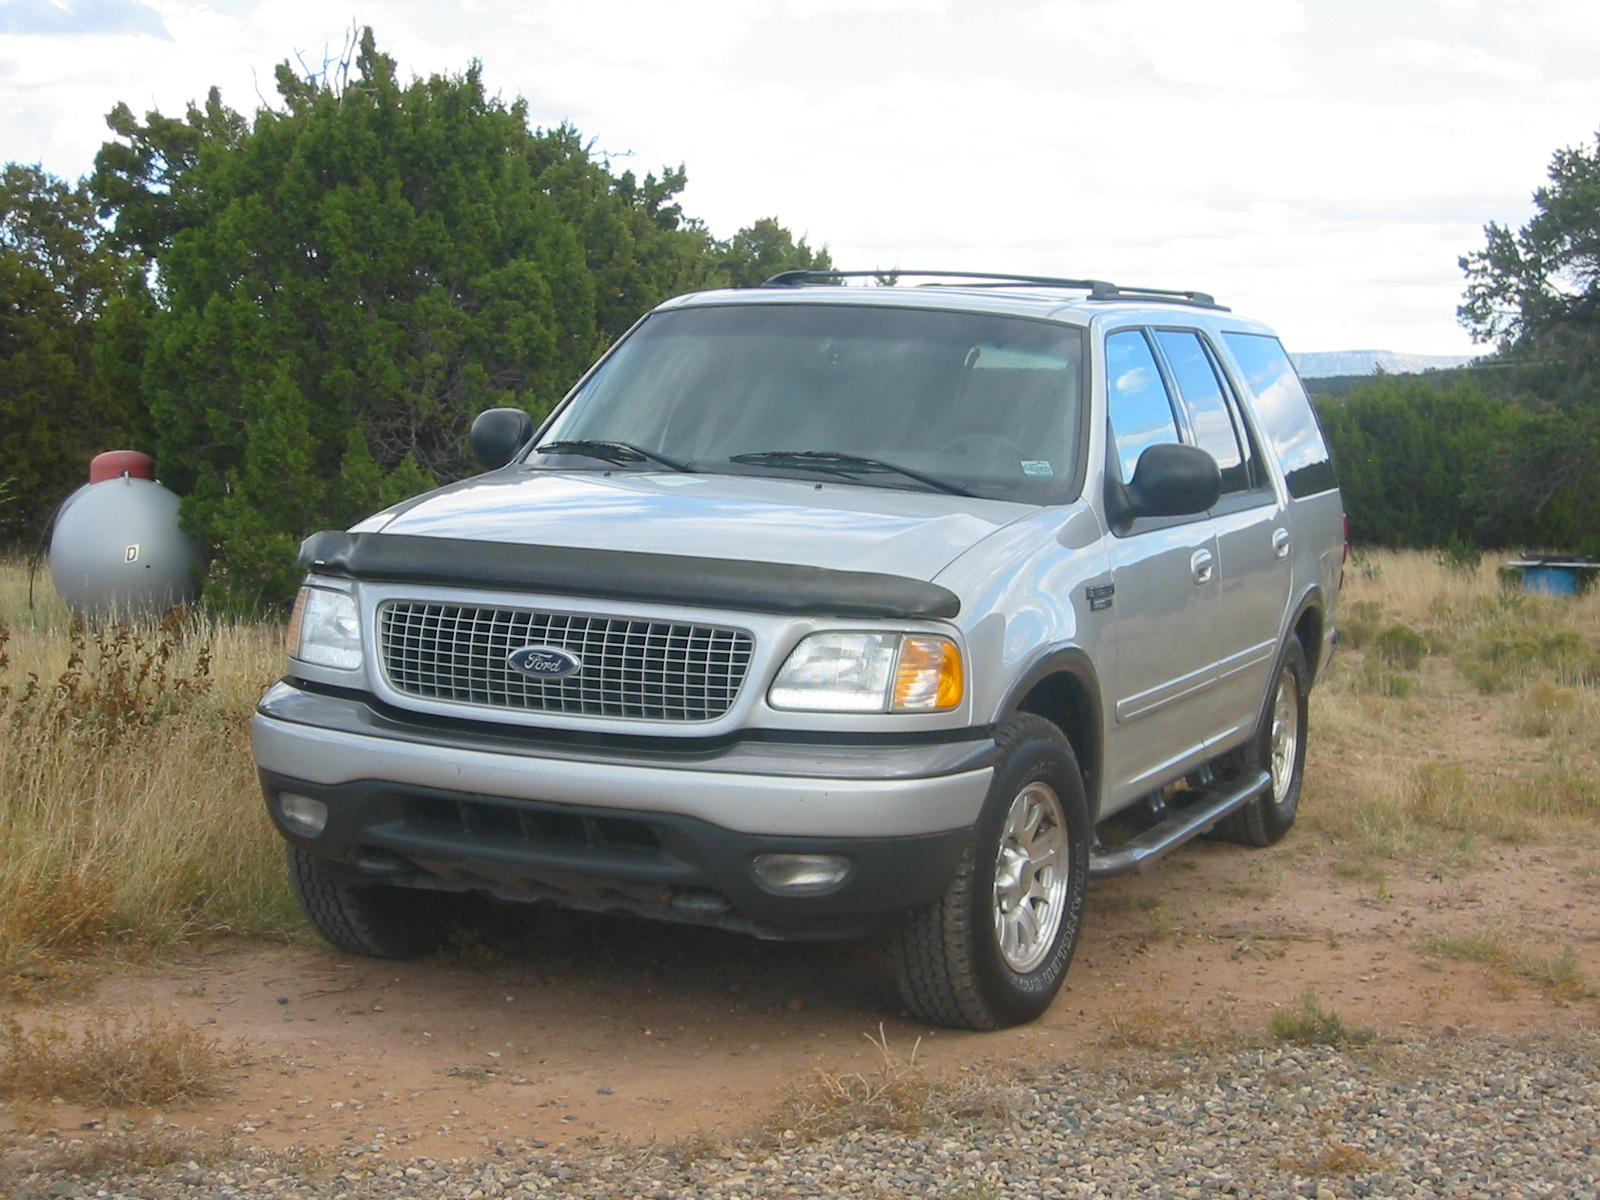 Silver Ford Expedition fl